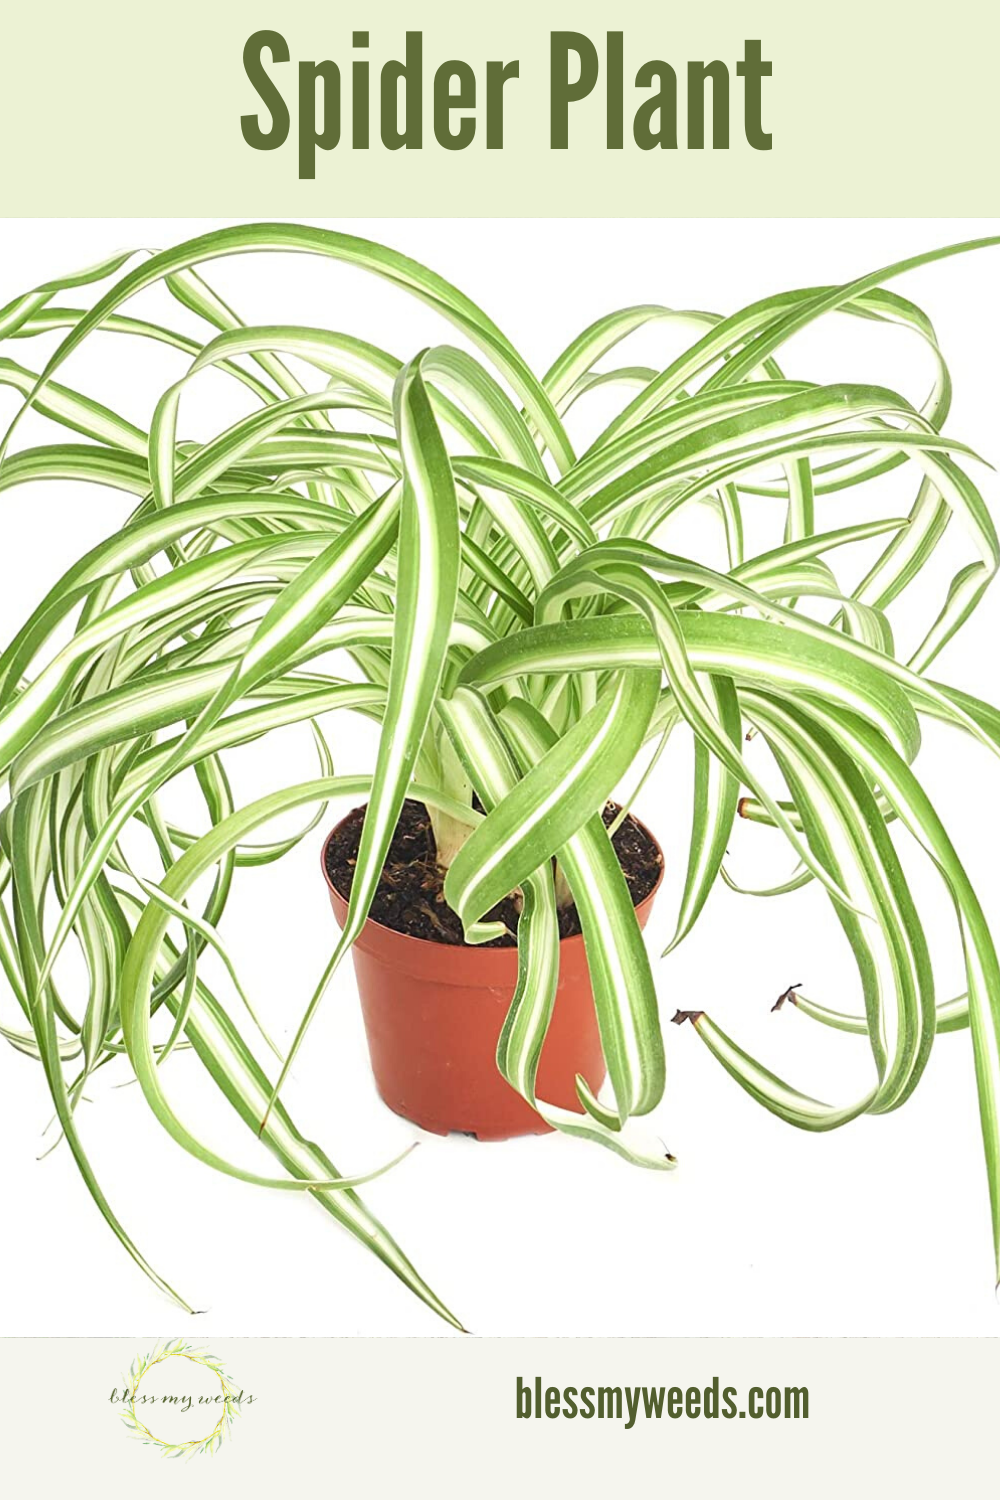 With a name like spider plant, you might think this plant is kind of creepy. But, it actually isn't anything you need to be afraid of. The spider plant is a great choice for a house plant. Read the post to learn all about this plant and how you can take care of it. #houseplants #indoorplants #plantguide #blessmyweedsblog